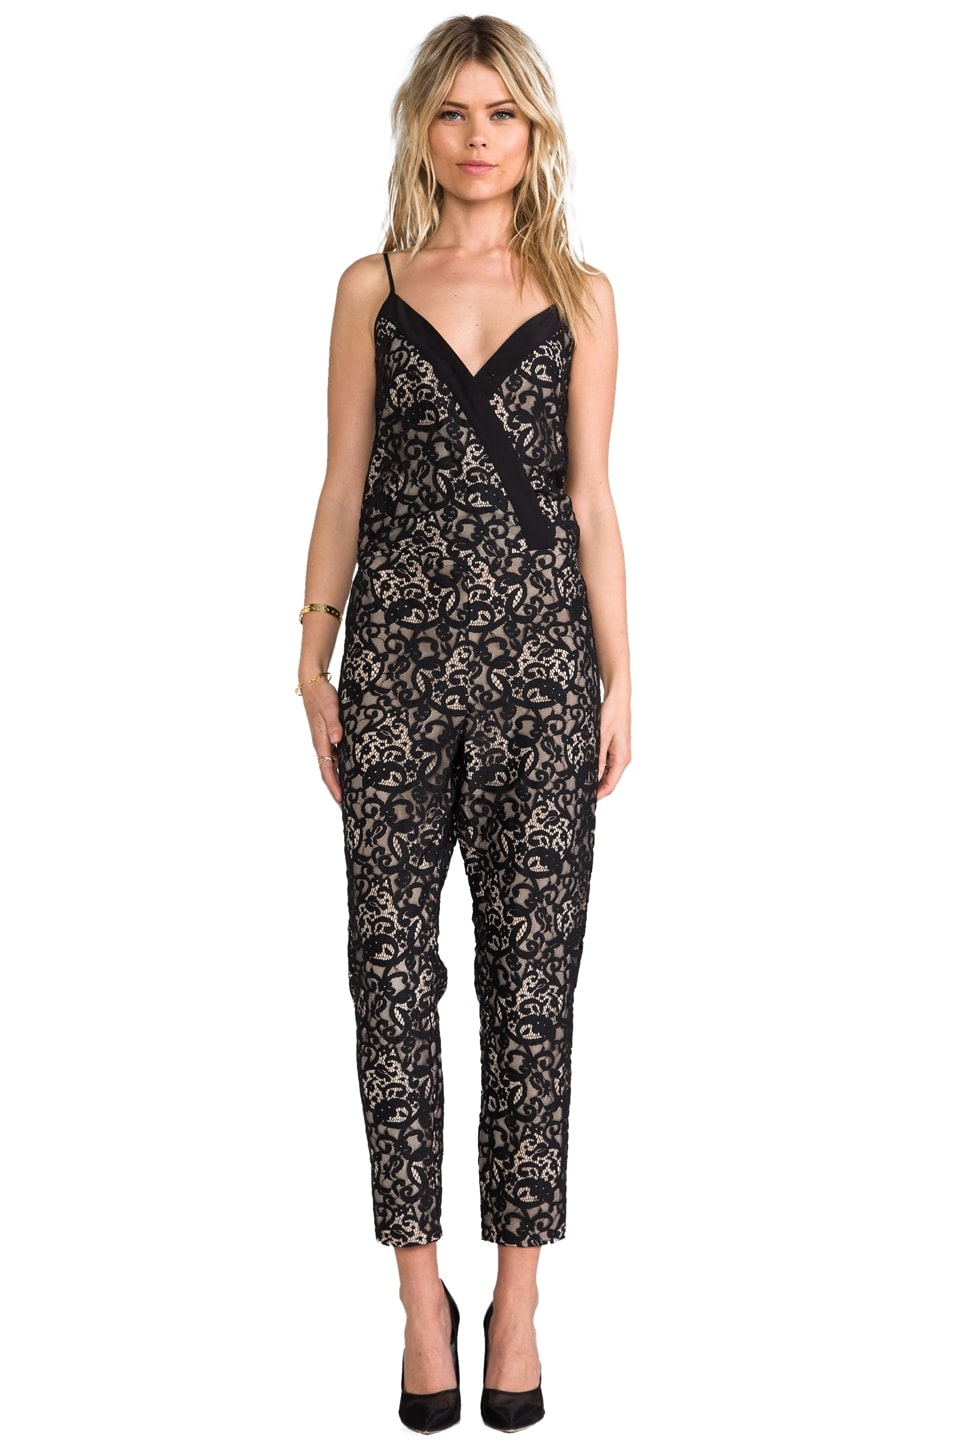 Parker Sienna Lace Jumpsuit in Black